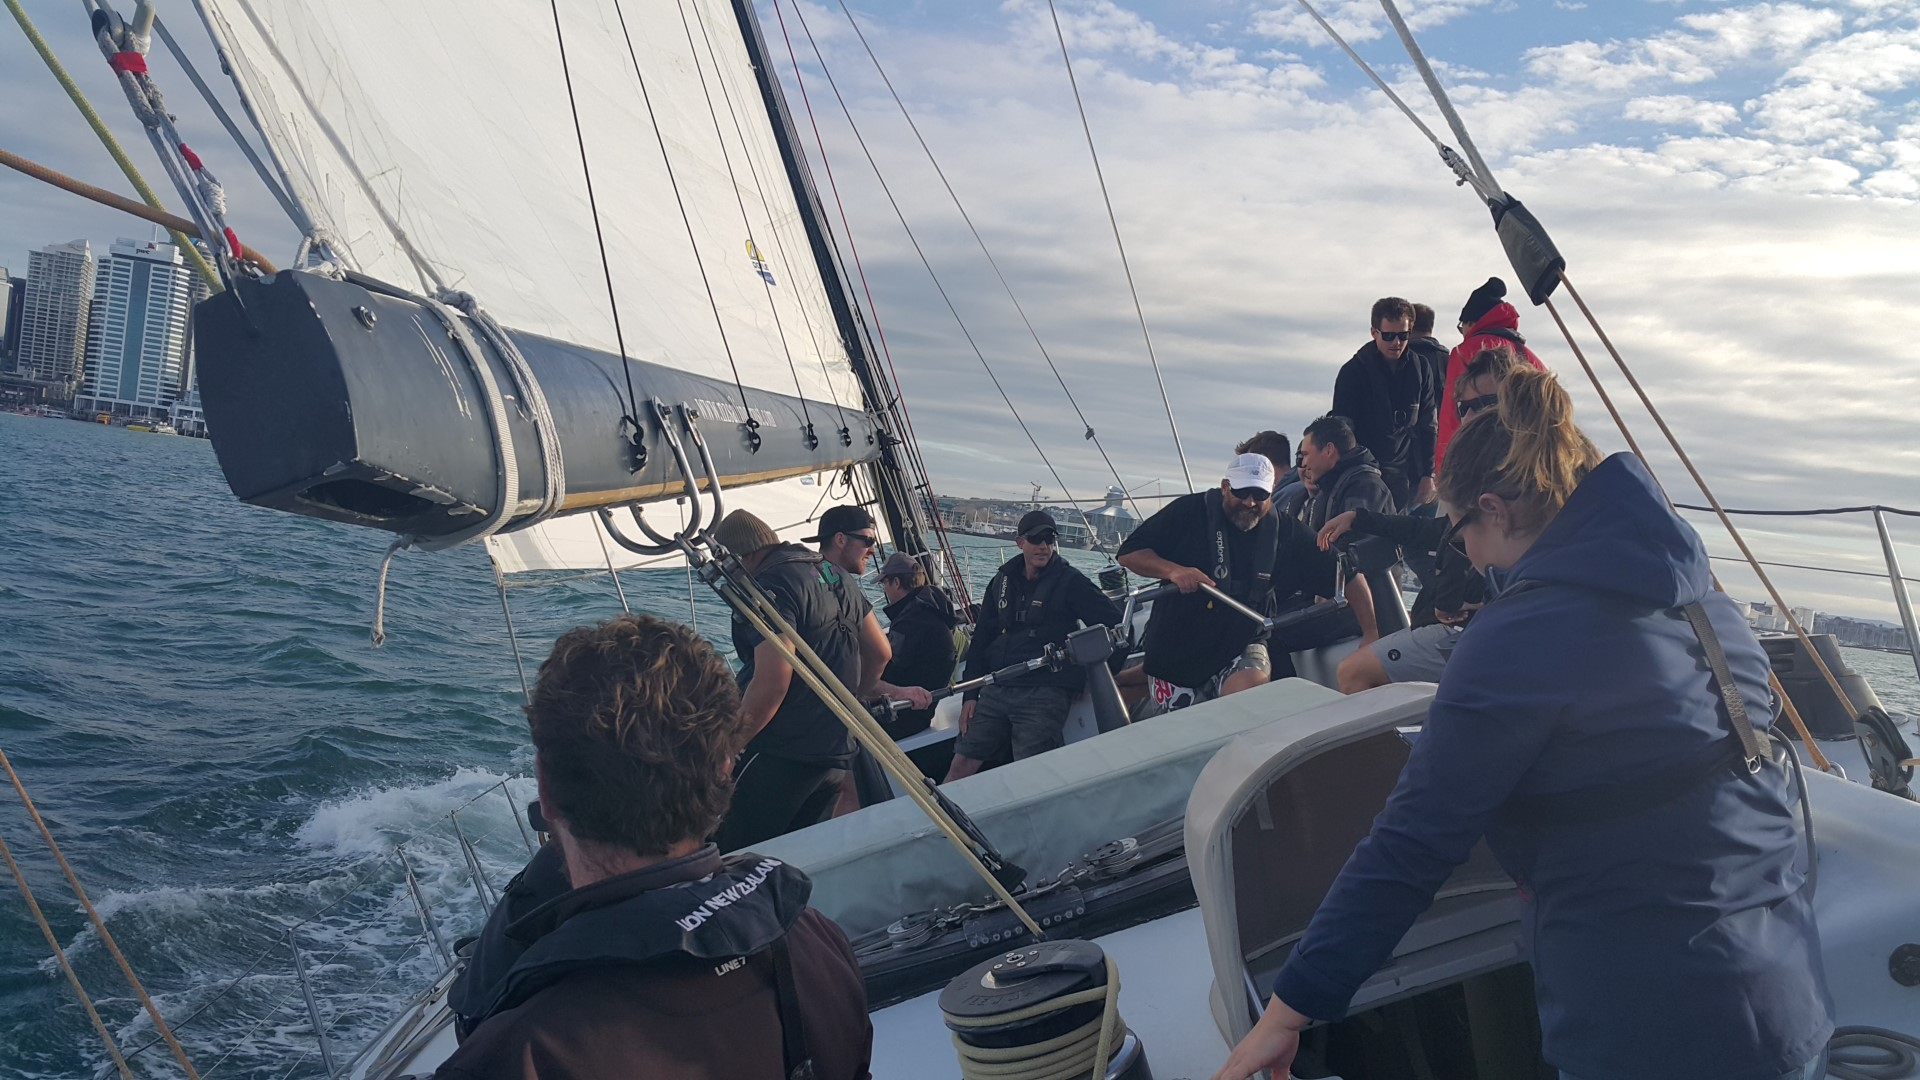 JFC staff on Americas's Cup boat